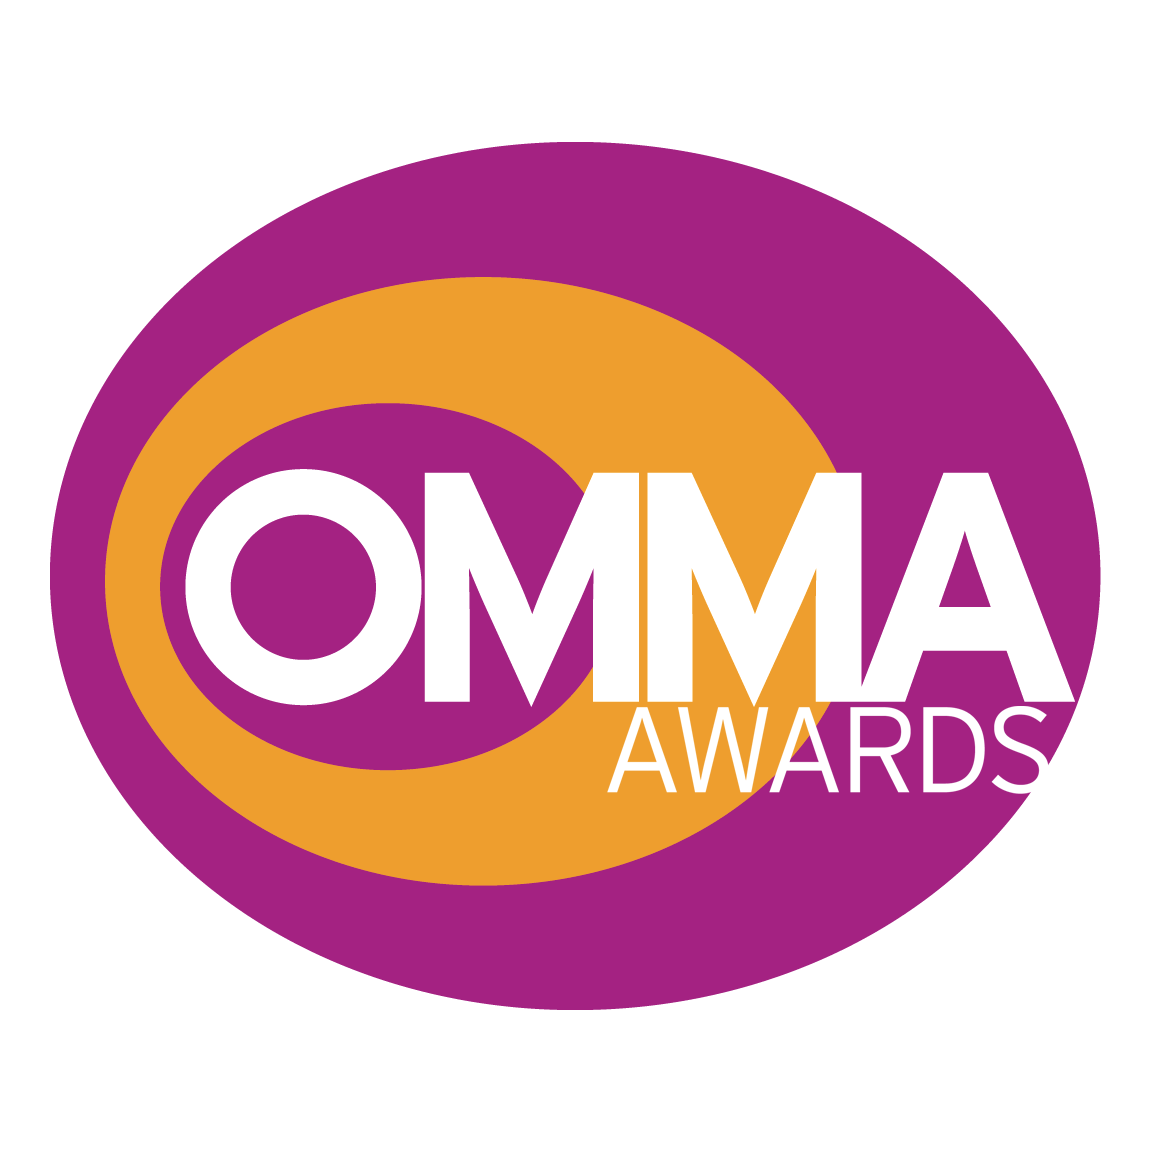 (MediaPost) OMMA Online Marketing Awards